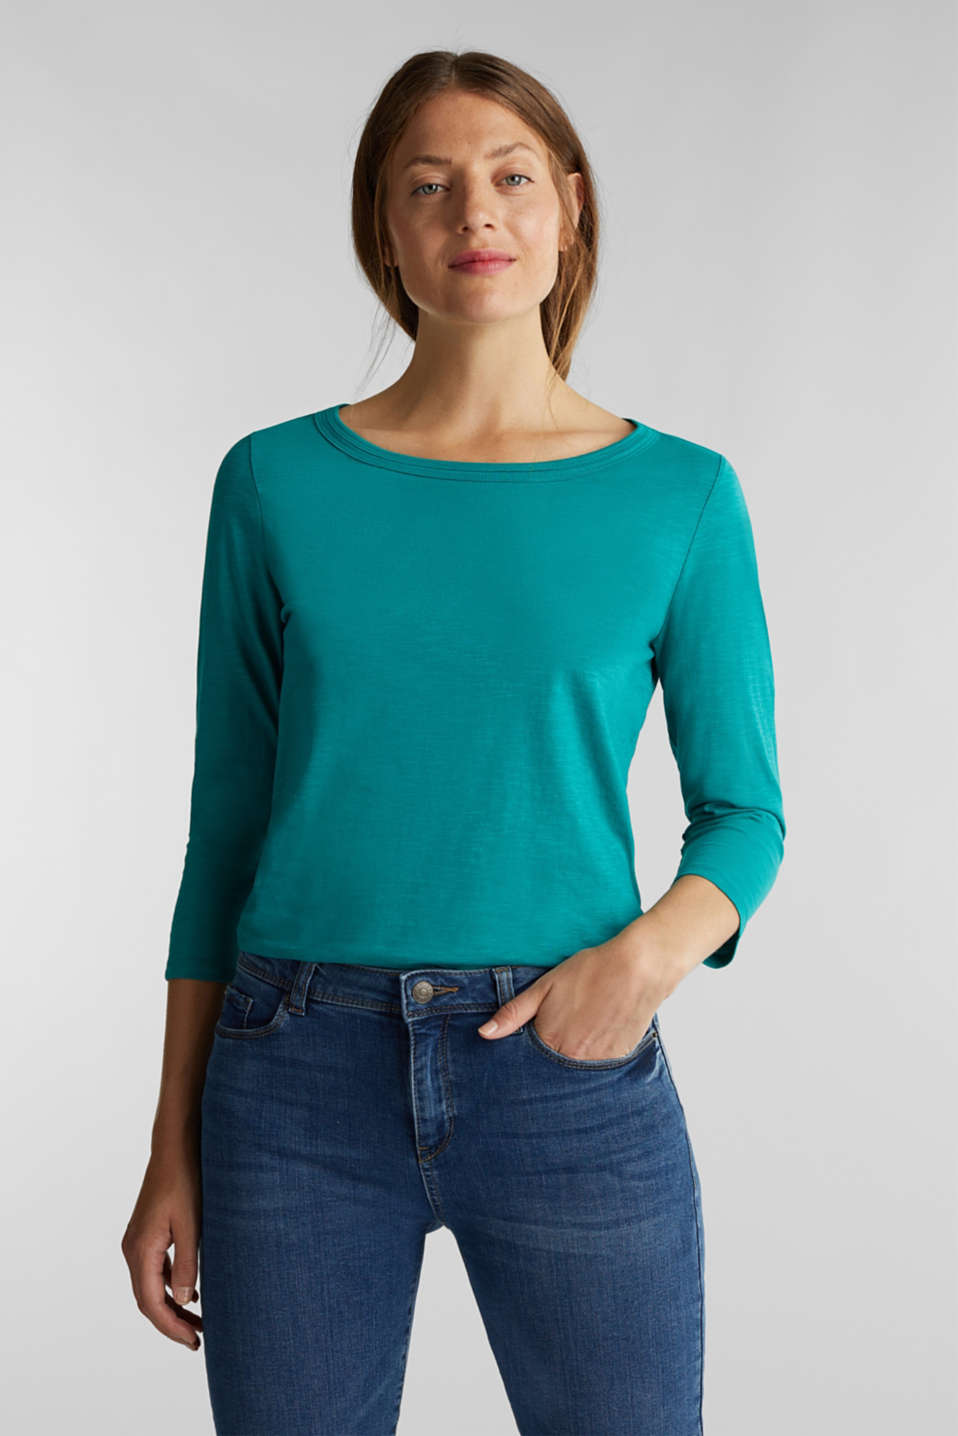 Esprit - Slub top with 3/4-length sleeves, 100% cotton